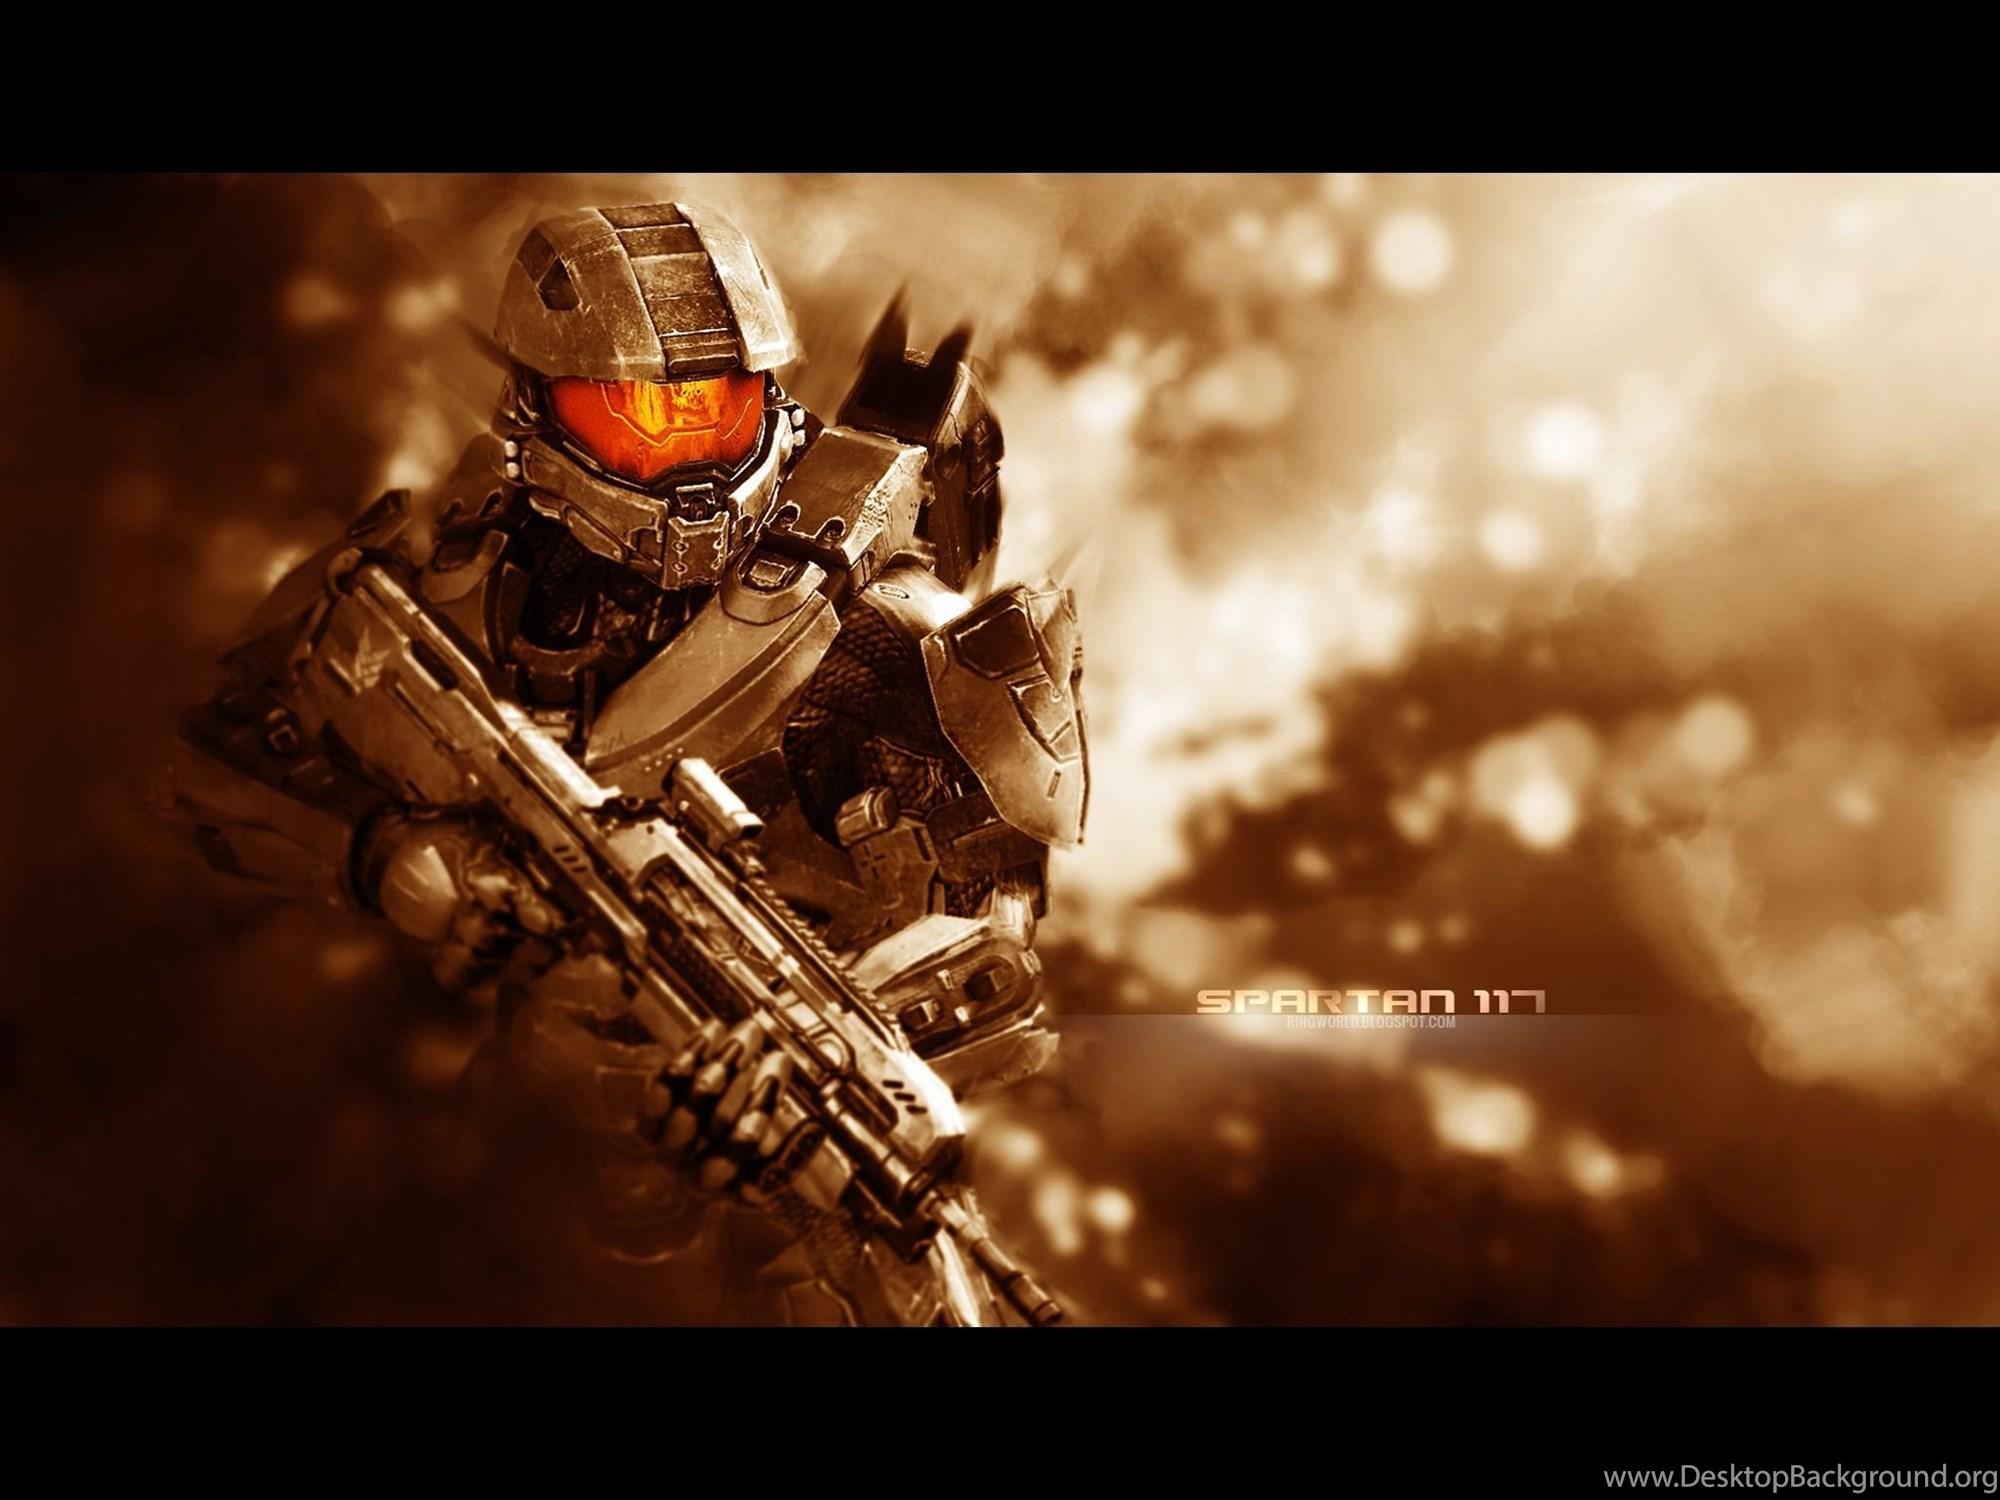 halo 4 master chief iphone wallpapers 2smyf on deviantart